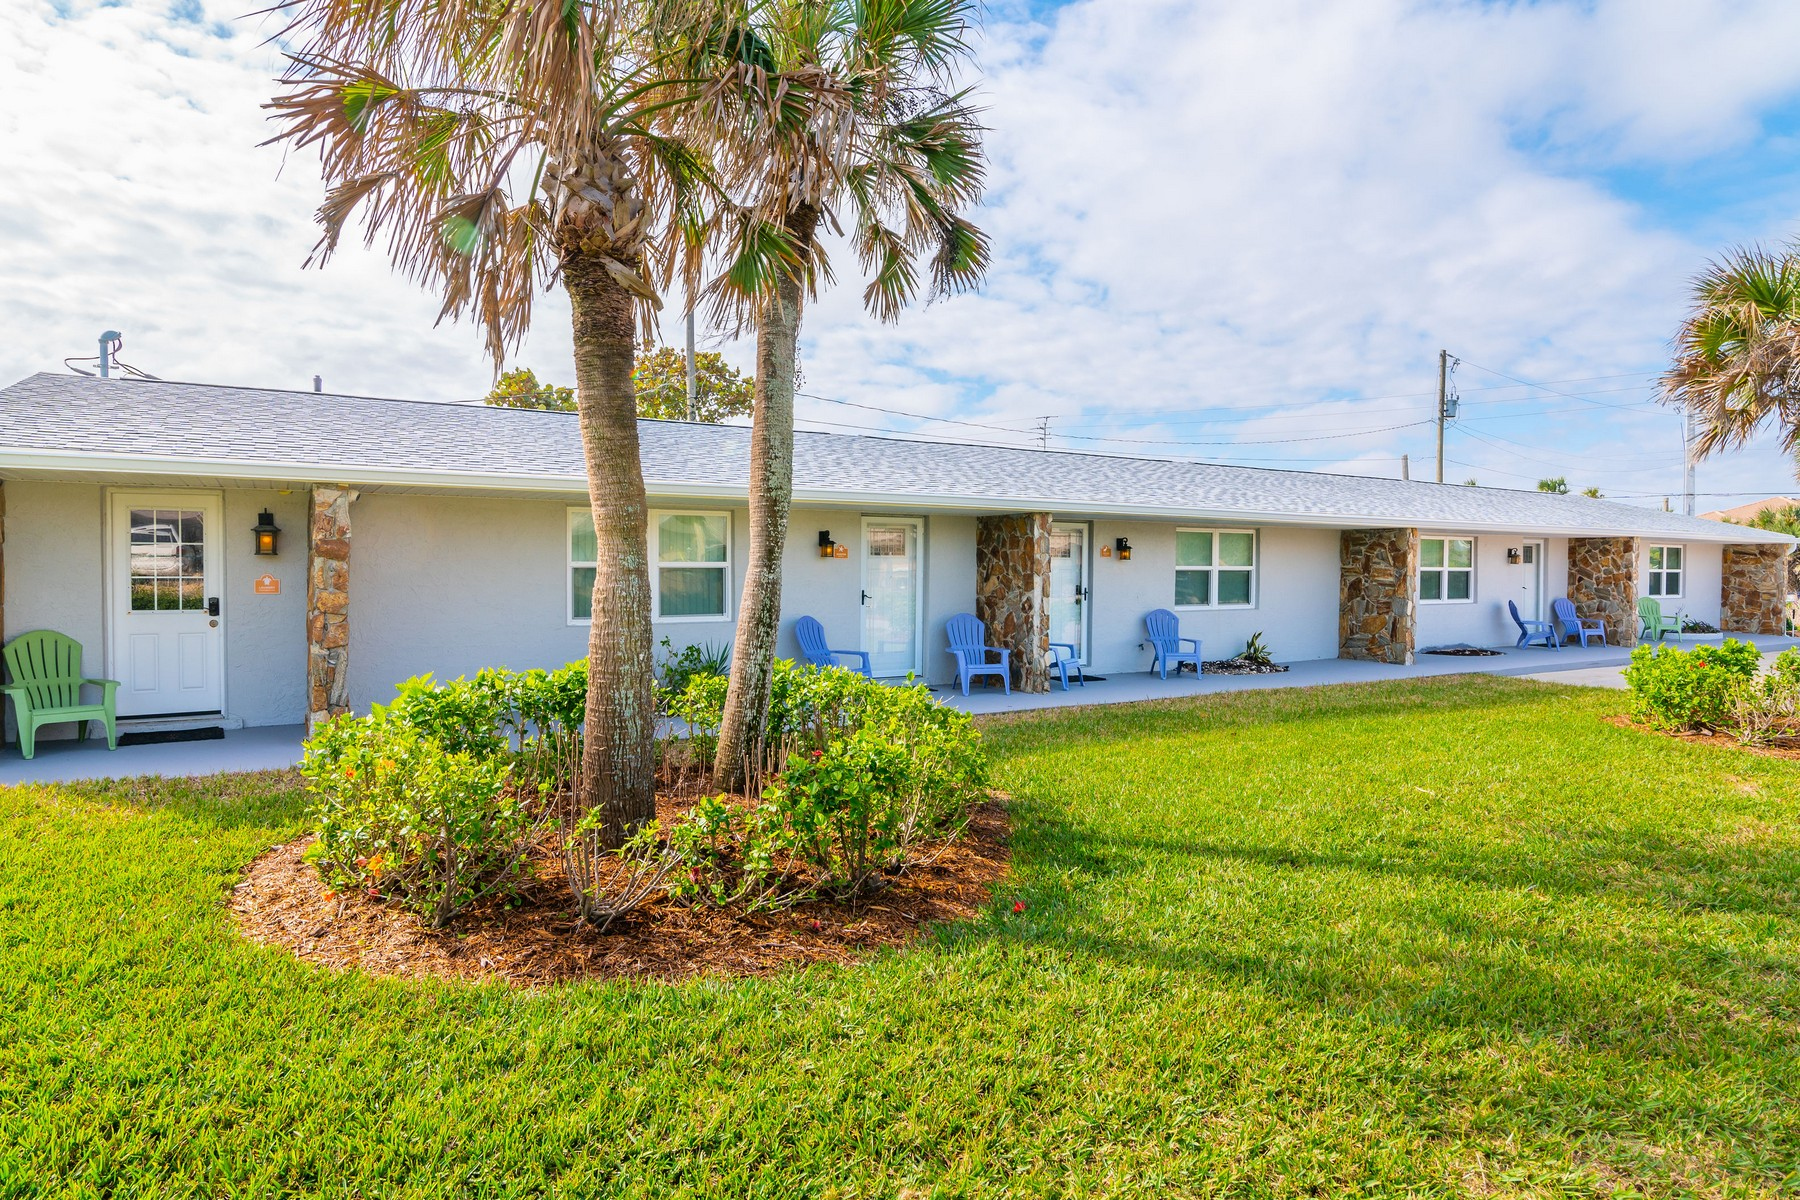 Multi-Family Homes for Sale at Tranquility Beach Resort 5695 S Highway A1A Melbourne Beach, Florida 32951 United States